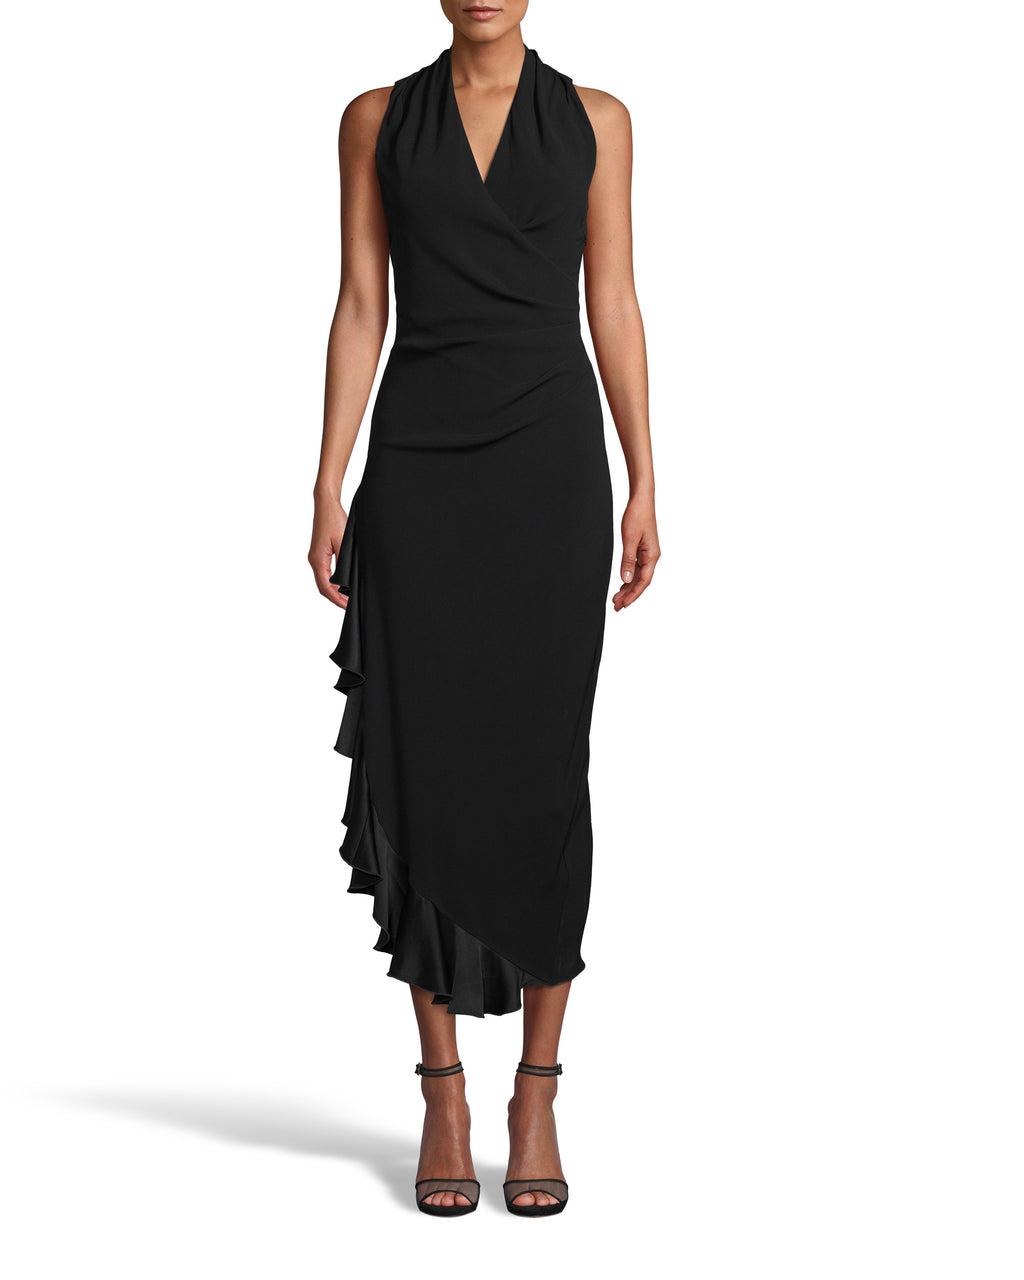 CE18274 - SATIN BACK CREPE MIDI DRESS W/ RUFFLE - dresses - midi - Satin midi dresses are a staple of Fall 2020. This bra friendly style features a side ruffle detail and fabric tucking at the waist for a slimming fit. Back zipper for closure. Add 1 line break Stylist tip: Wear with simple heels and bold jewelry.